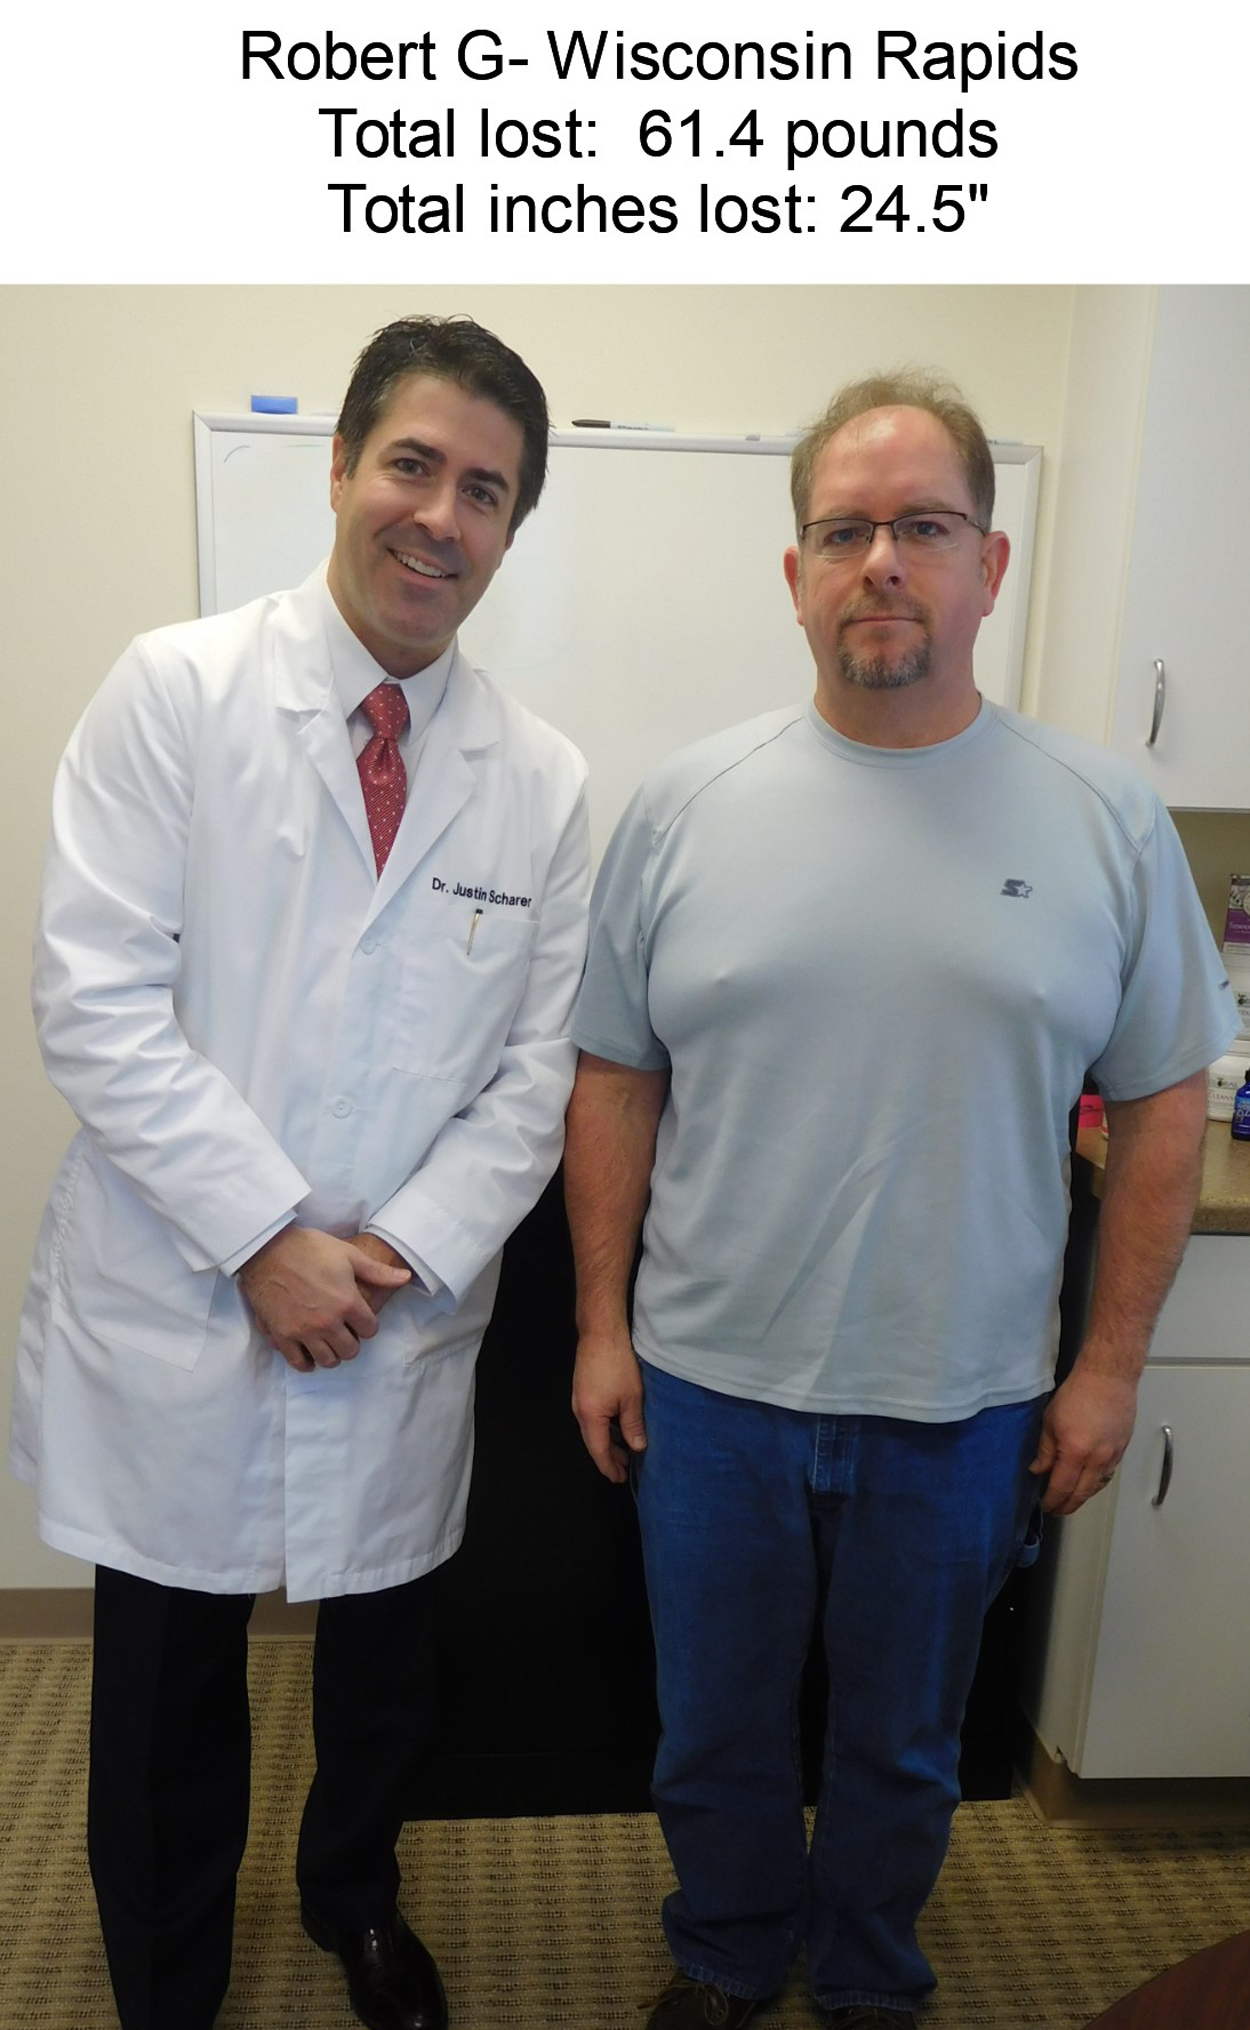 Weight loss doctors in missouri city tx photo 6